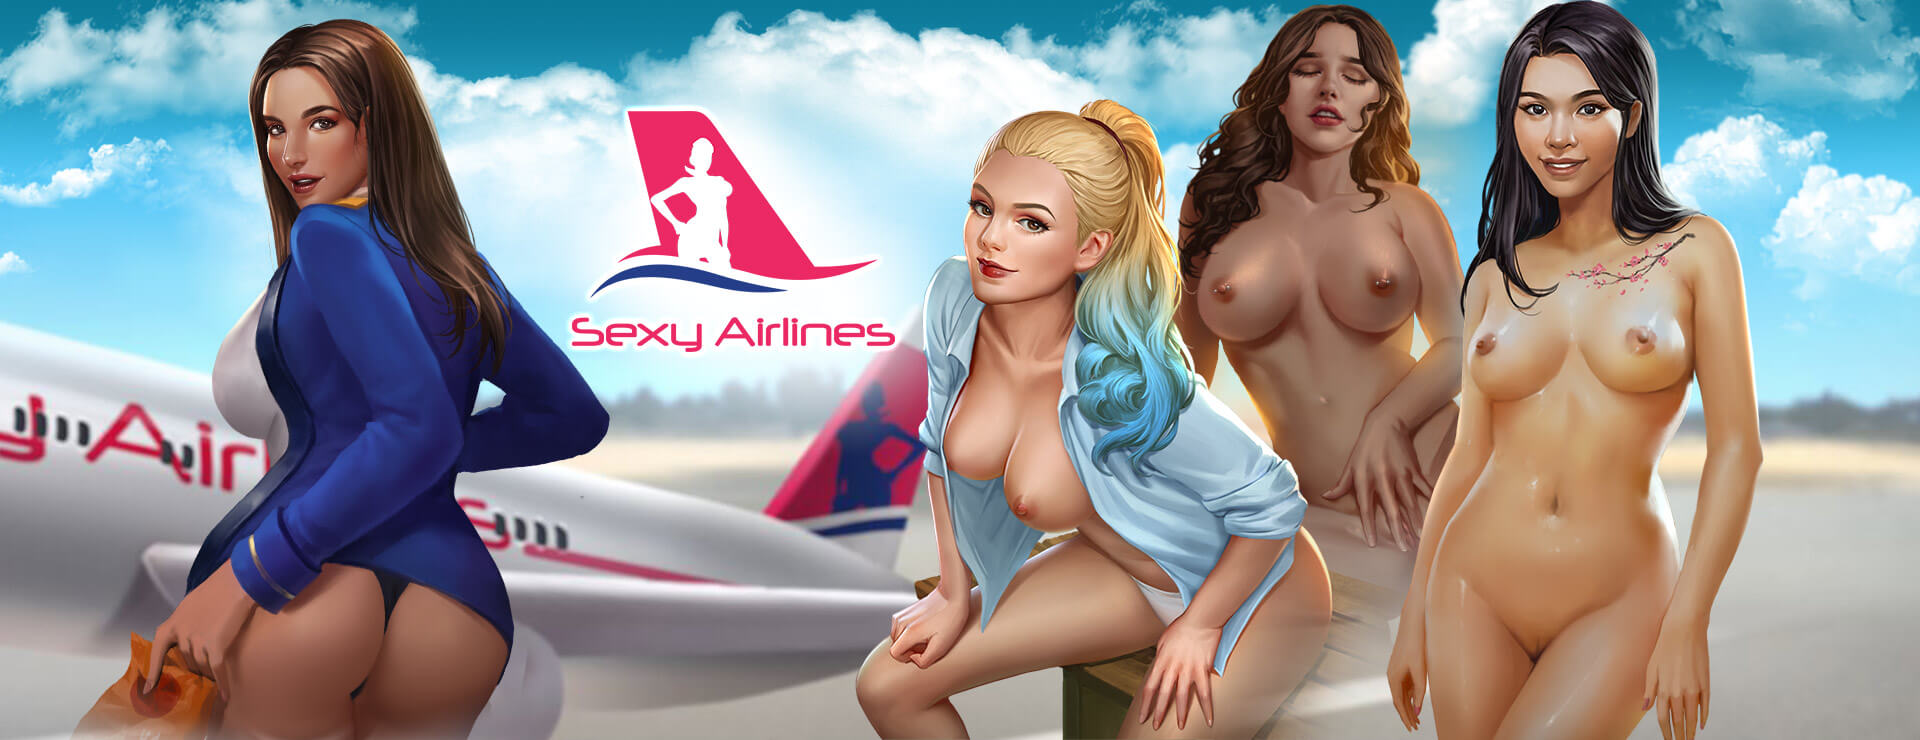 Sexy Airlines - Idle Game